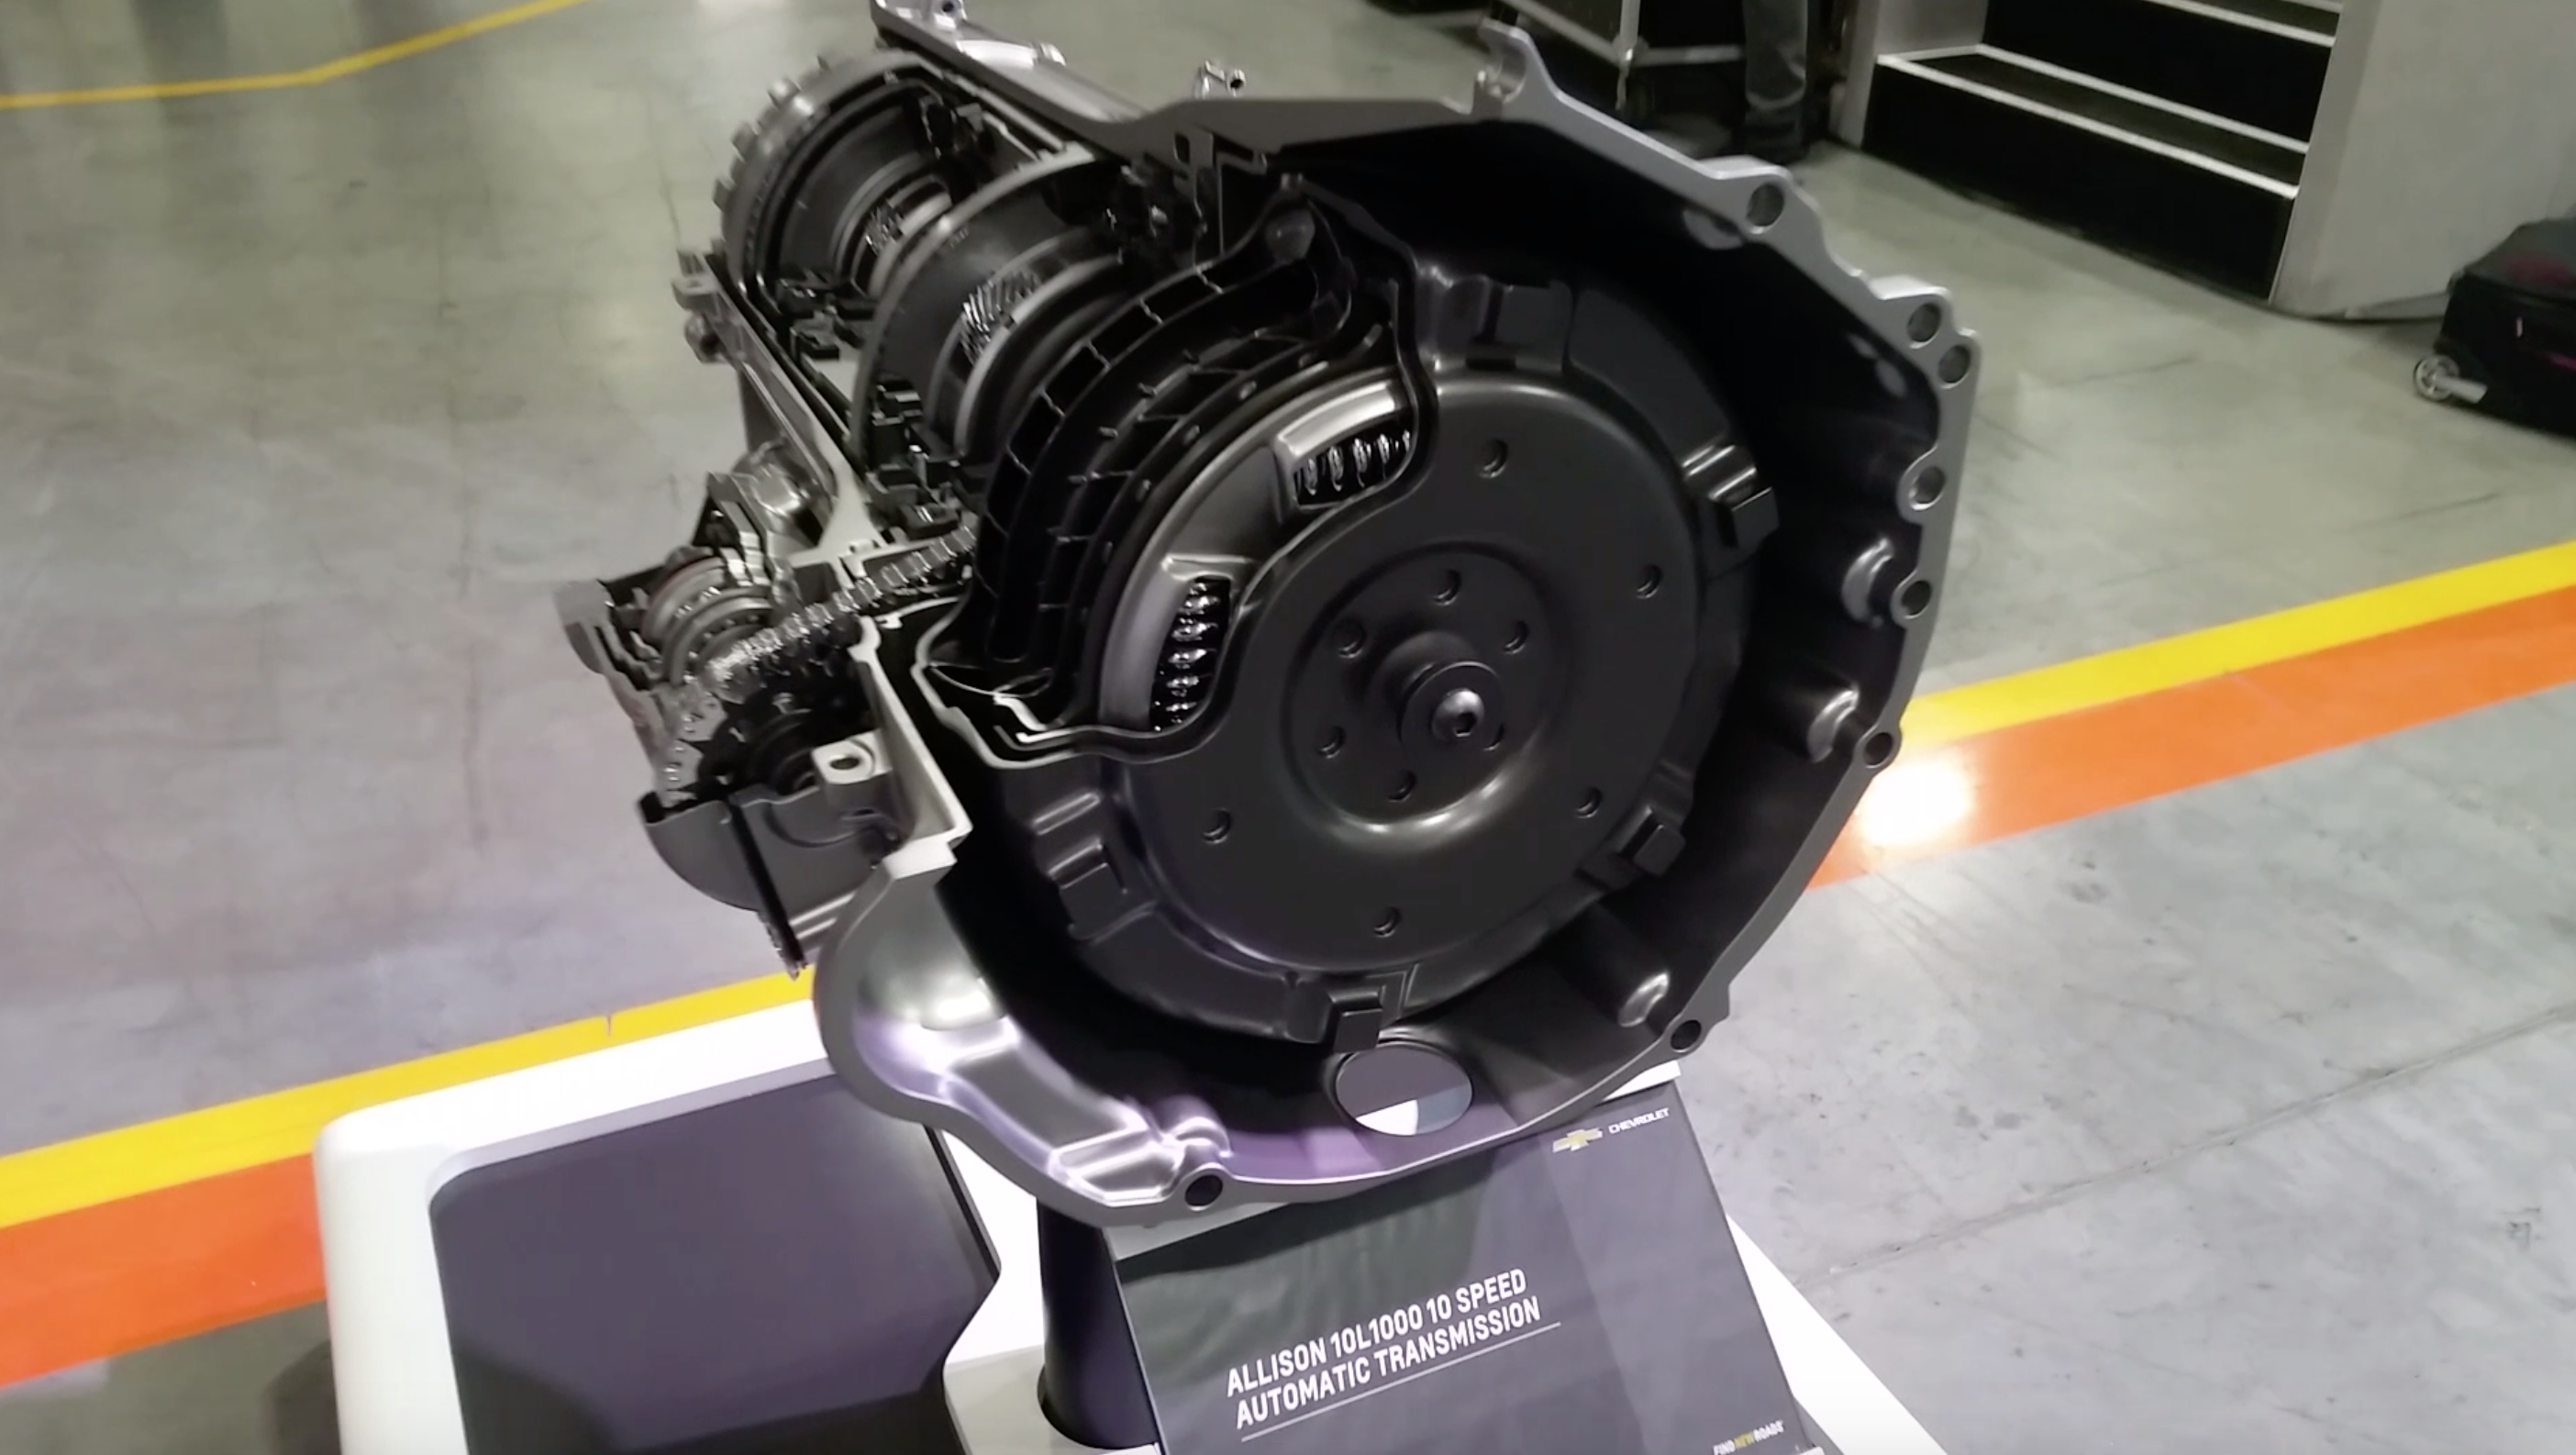 Video: Closer look at the new Allison 10-speed transmission